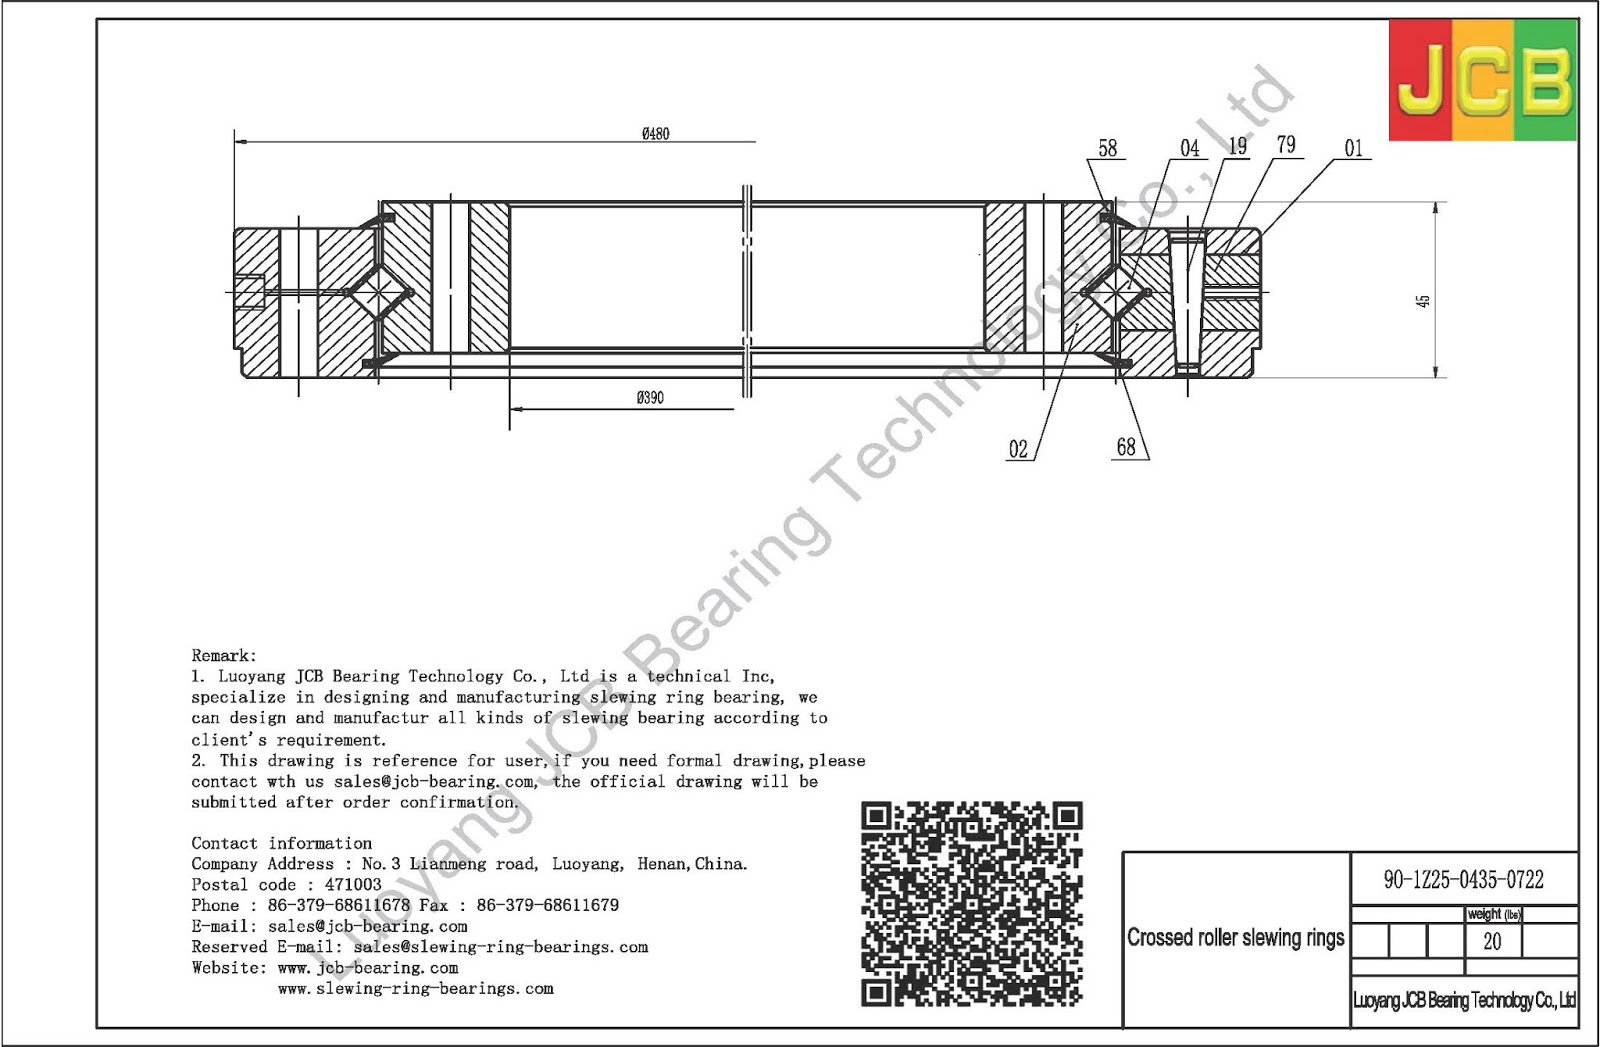 PSL slewing rings: Supply 9O-1Z25-0435-0722 of PSL slewing